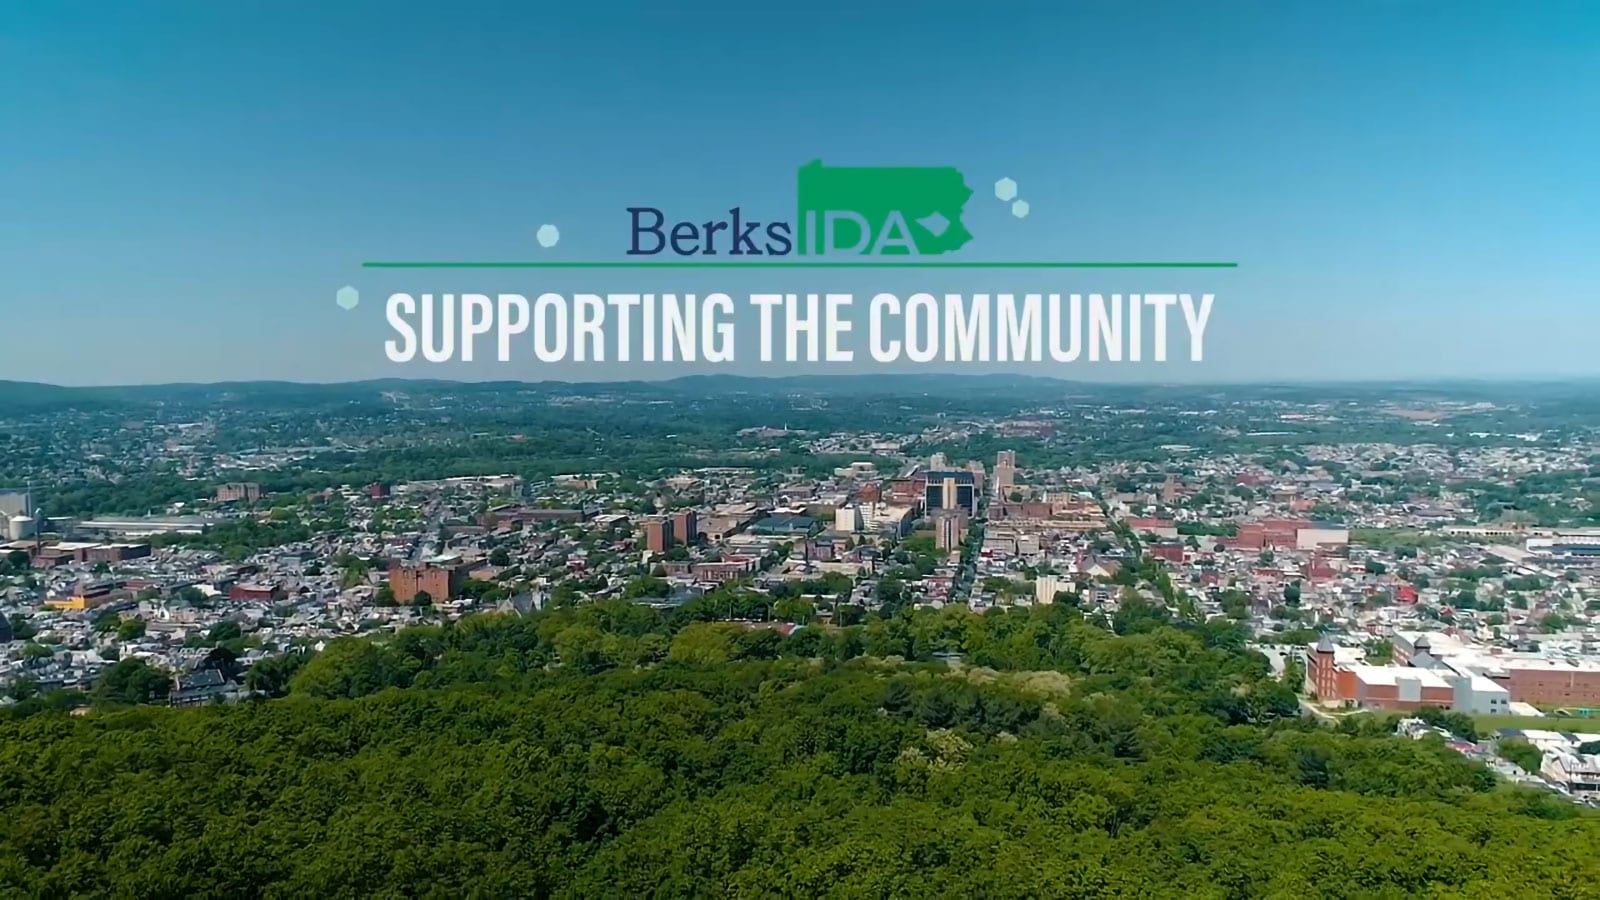 Berks County Industrial Development Authority Gets a New Website & Logo